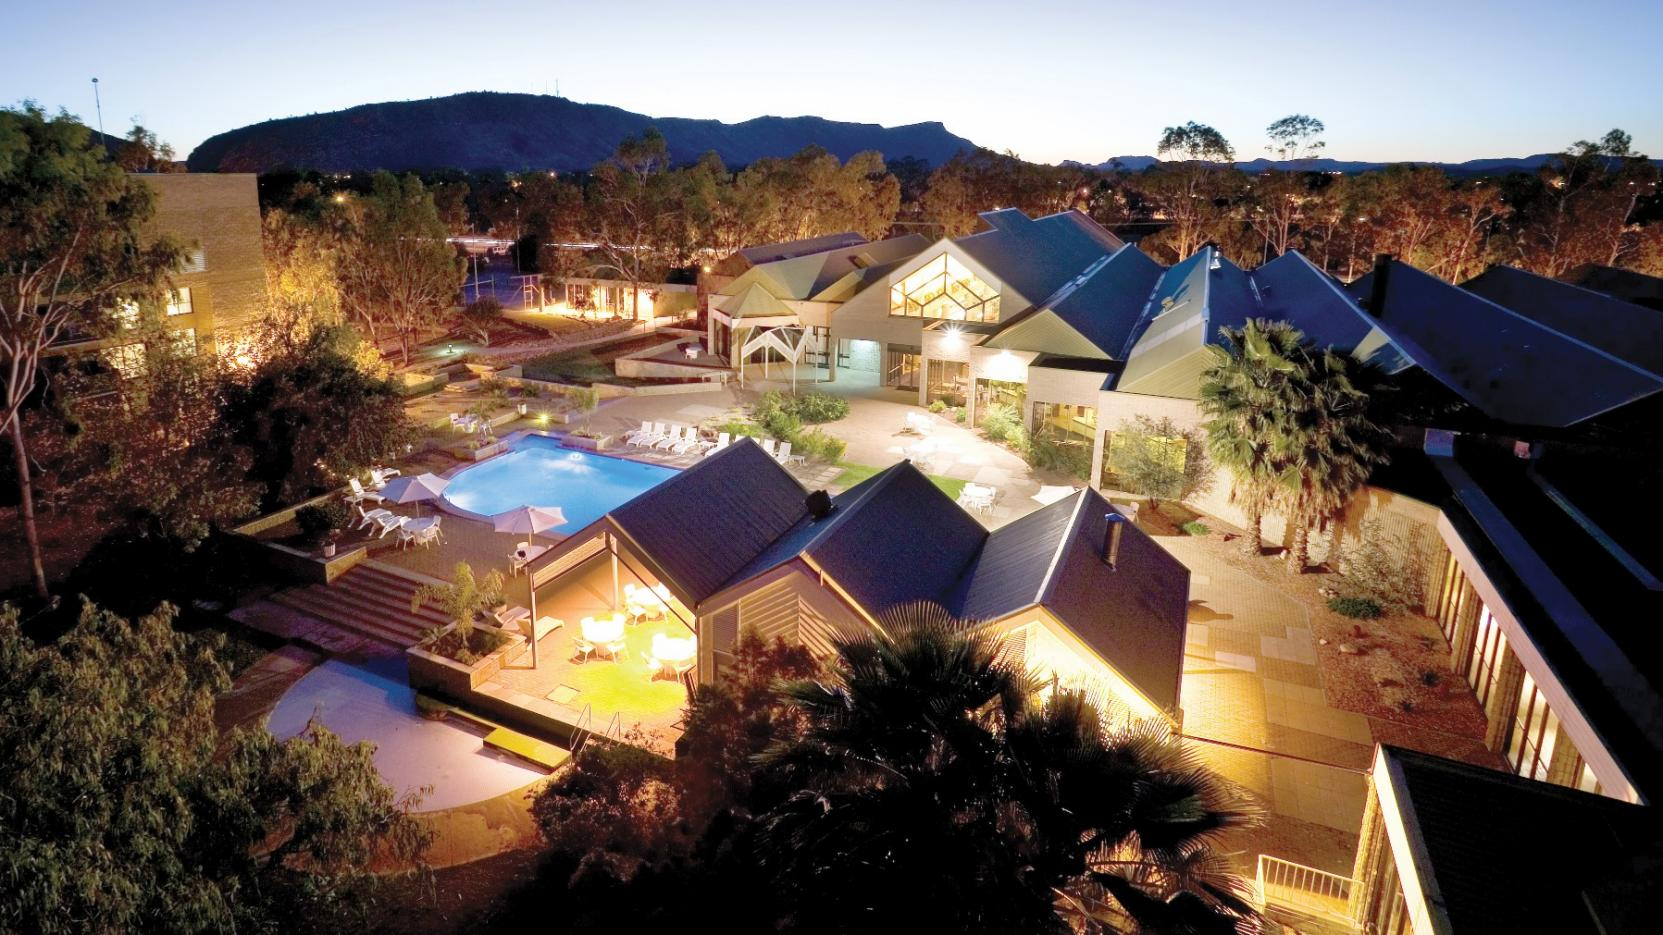 DoubleTree by Hilton, Alice Springs, NT. © DoubleTree by Hilton